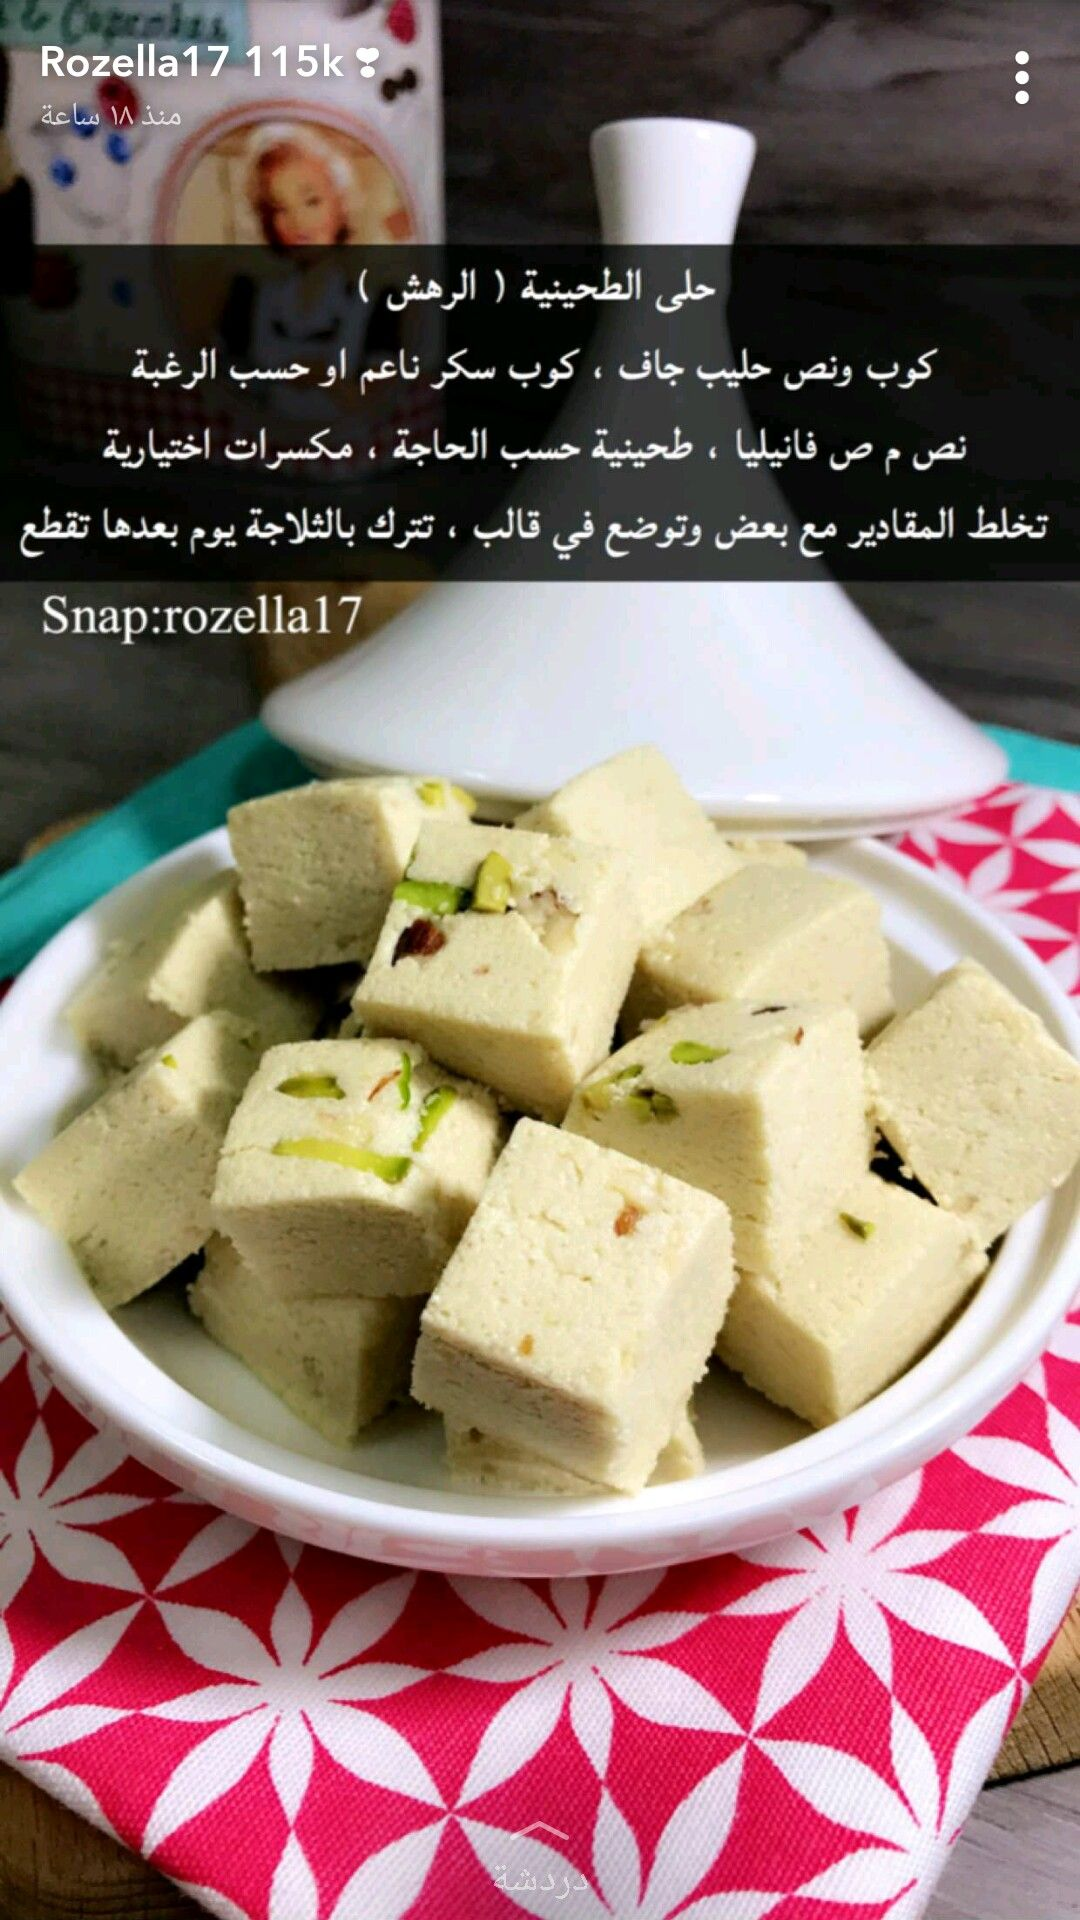 طحينية طريقة اخرى Sweets Recipes Cooking Recipes Desserts Dessert Recipes